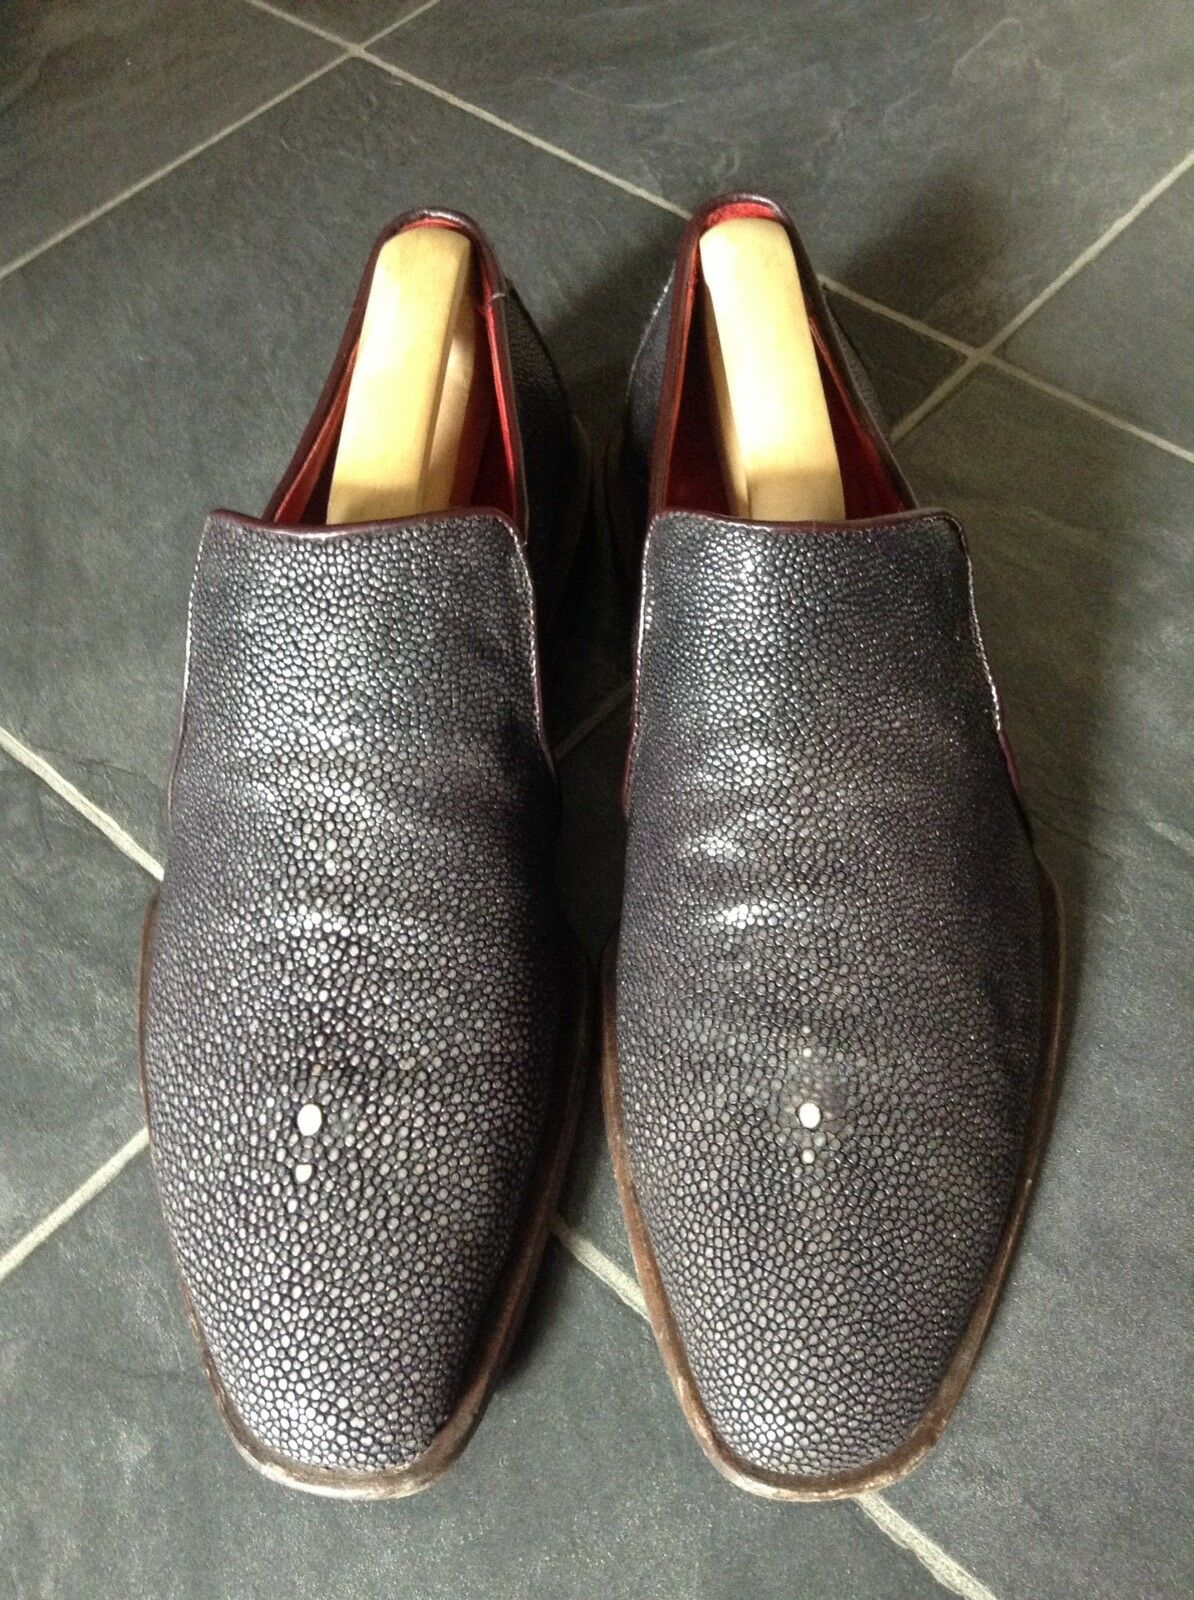 Oliver Sweeney THE GQ Chaussure, Skin StinGris  Skin Chaussure, Mocassin, Taille 8/42, Aubergine 257c97